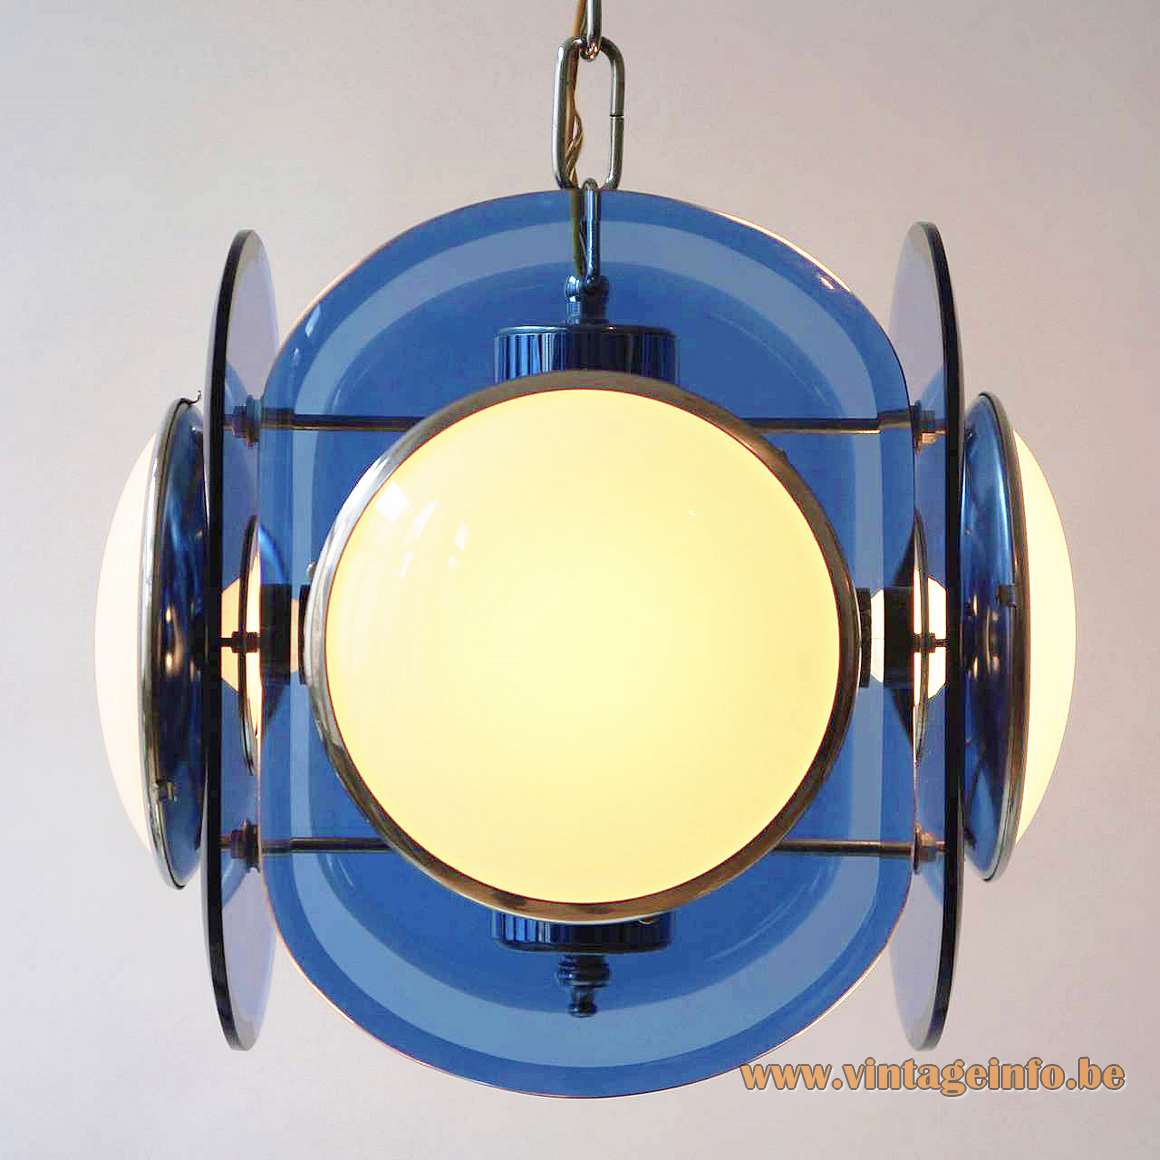 Veca 1960s white & blue glass chandelier chrome frame tubes chain cut glass discs Fontana Arte 1970s